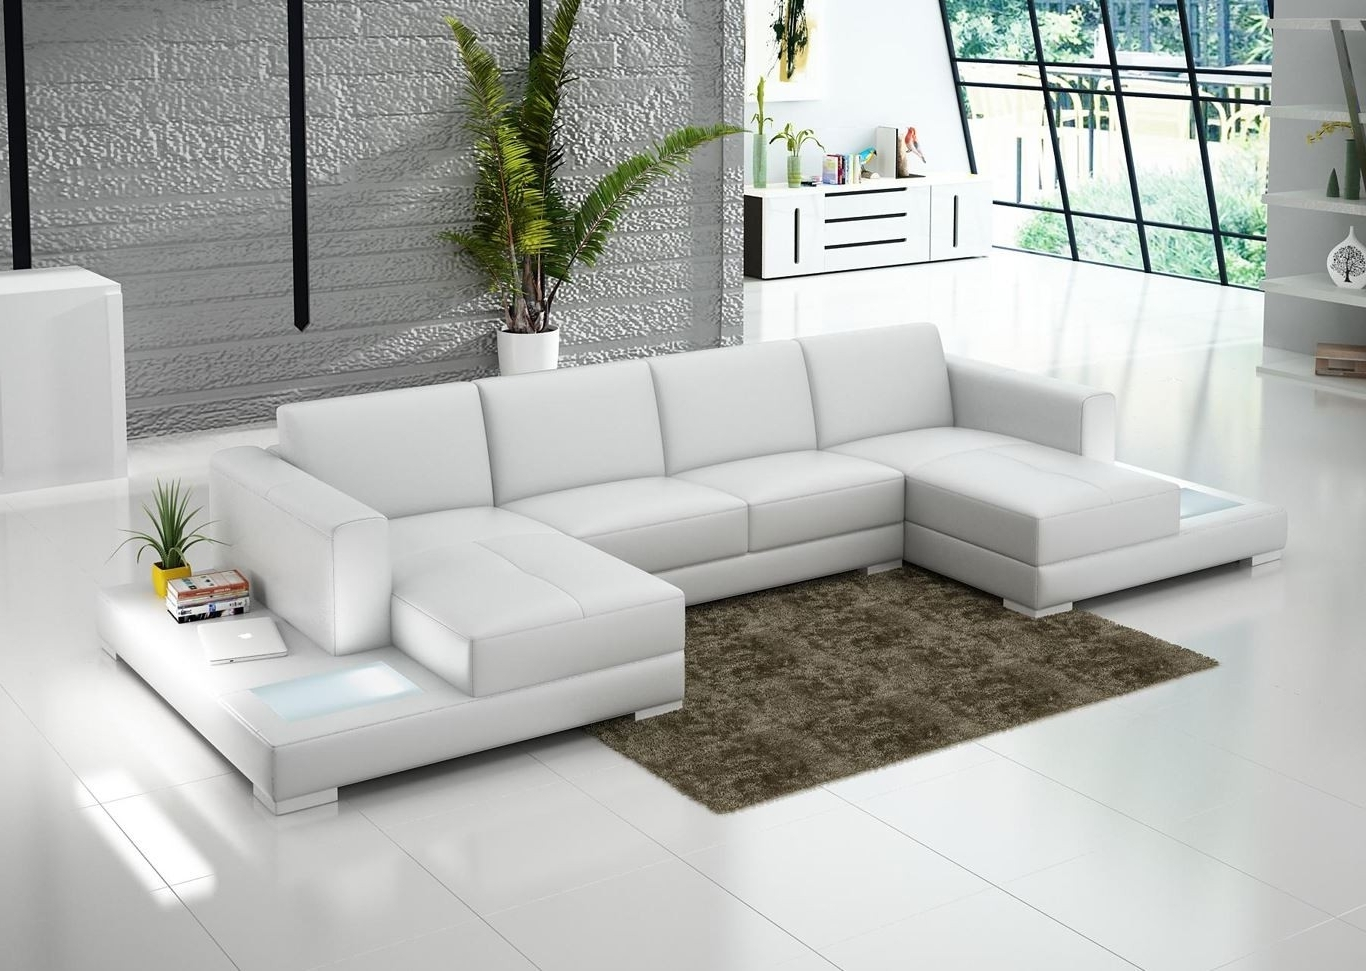 Well Known Double Chaise Sectional For Complete And Perfect Welcoming Living Inside Double Chaise Sofas (View 14 of 15)